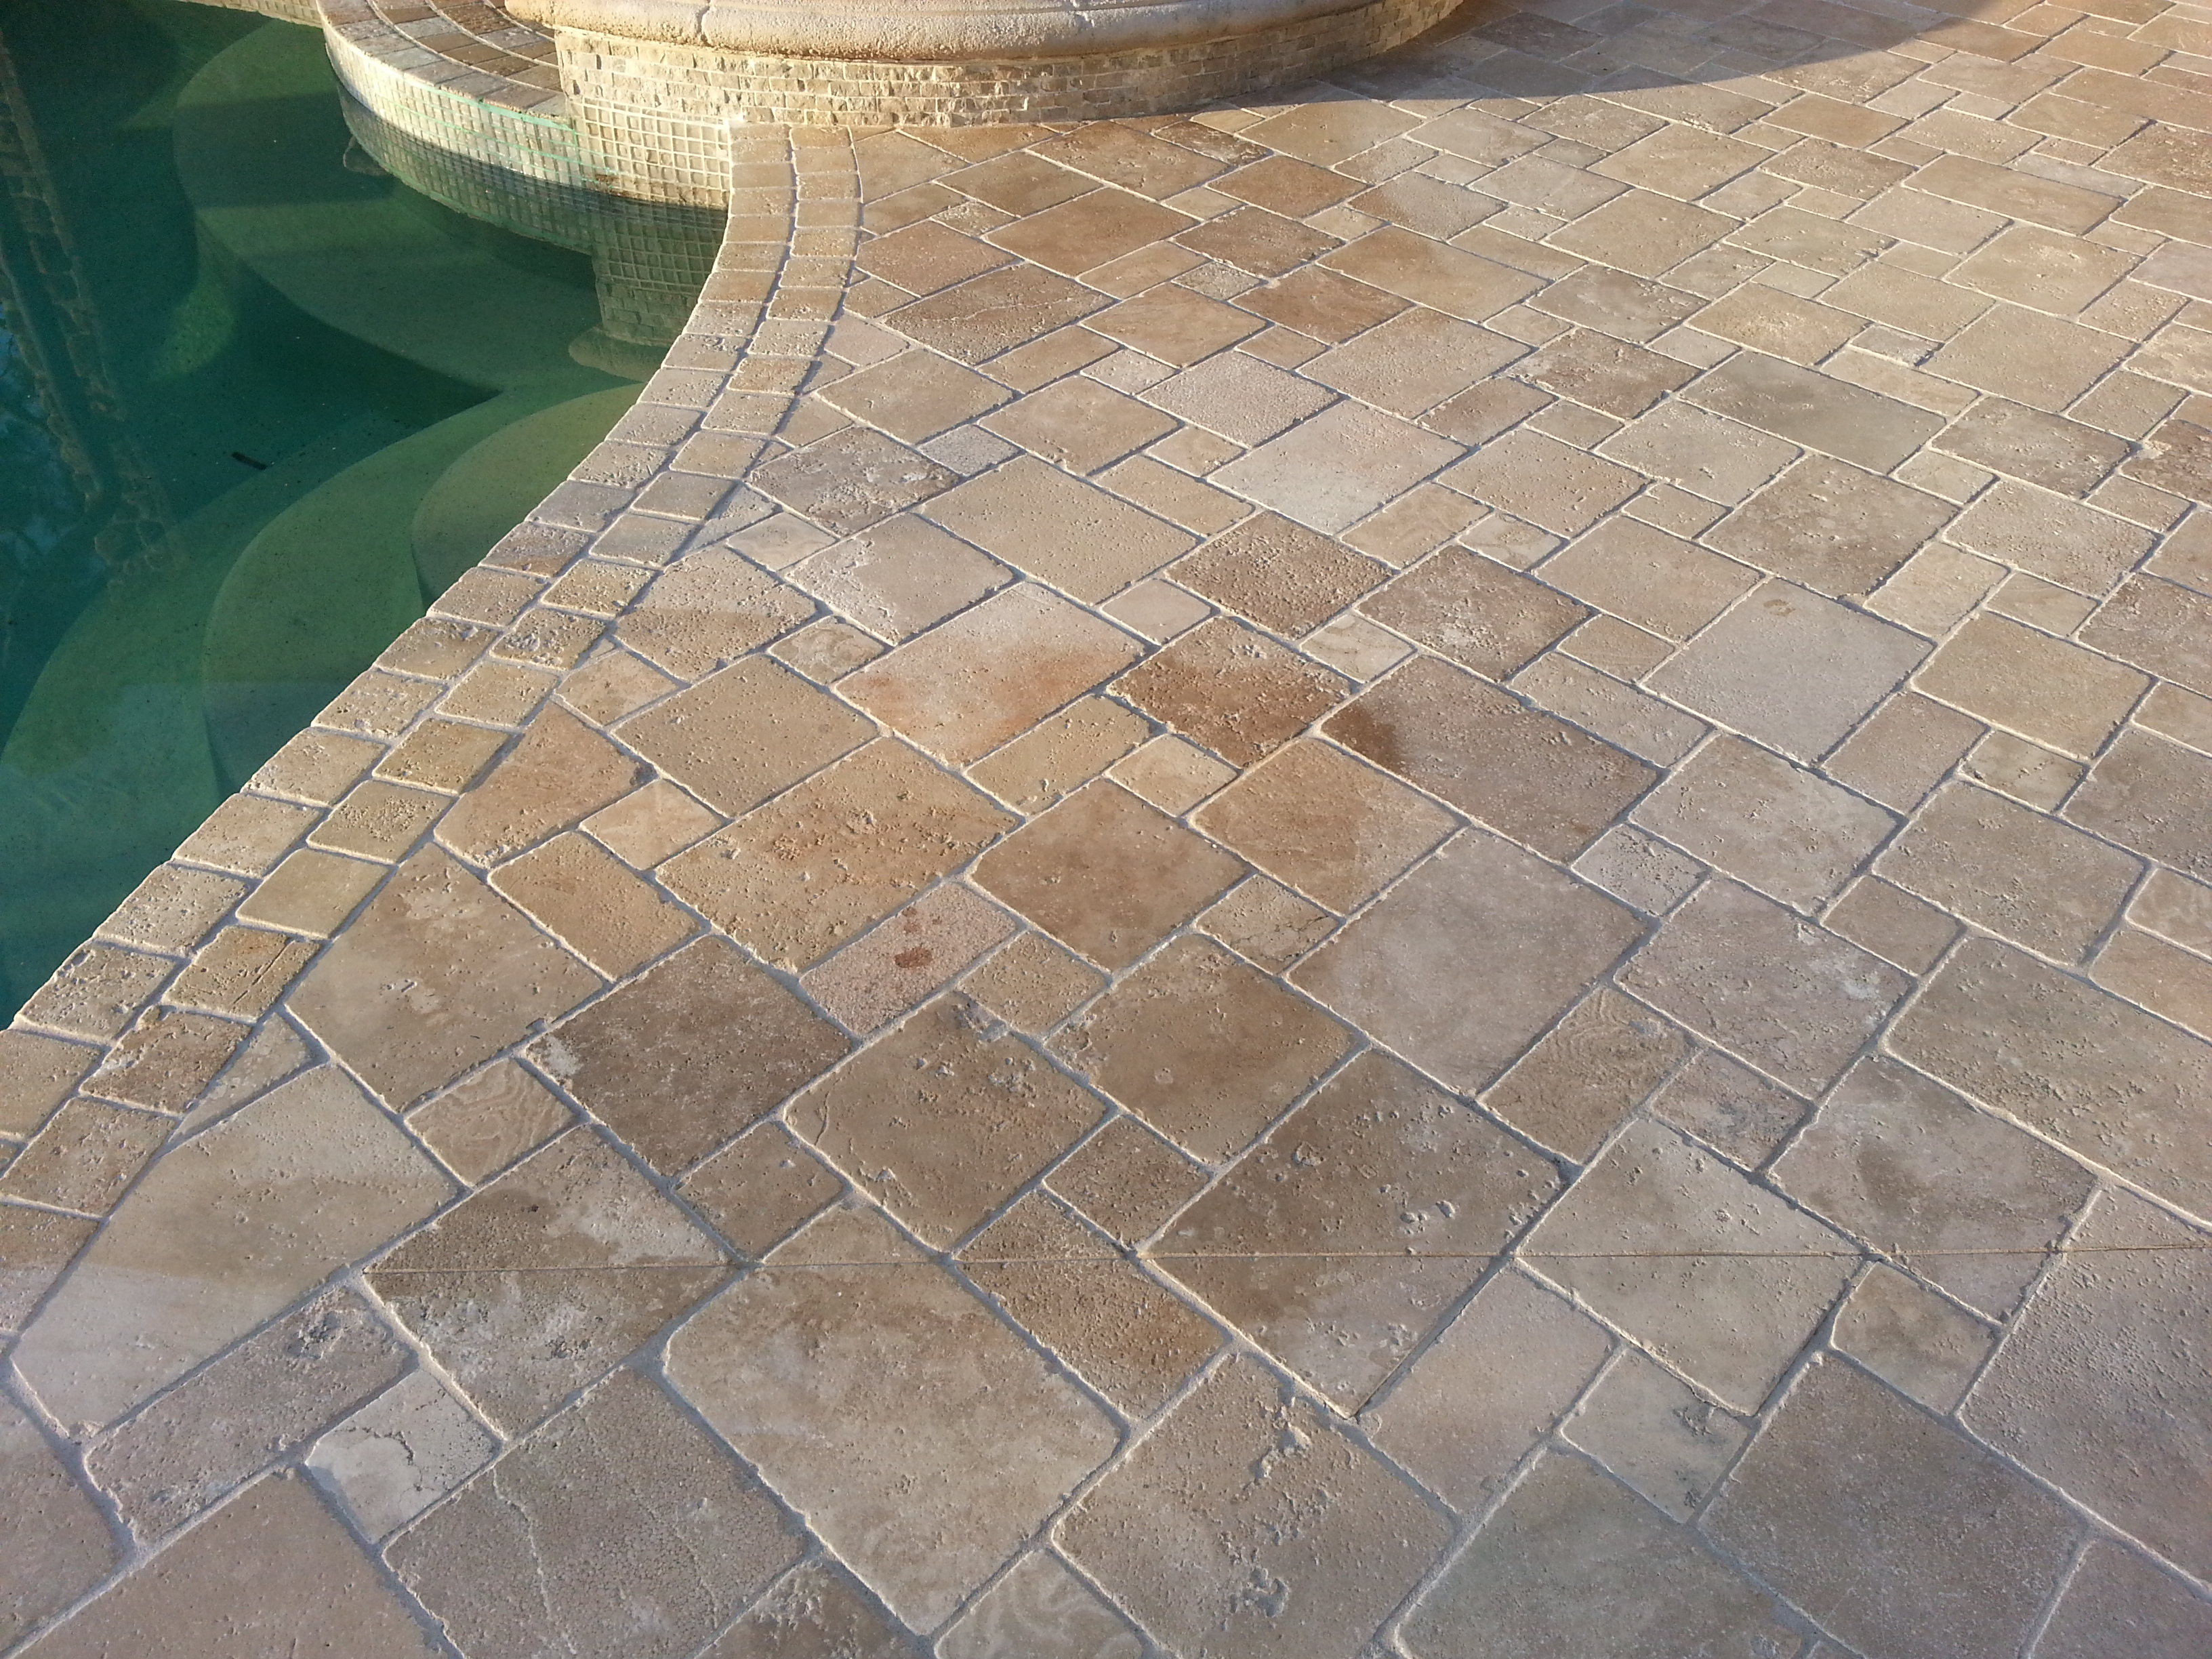 Exterior Travertine Tiles How To Keep Them Looking Their Best